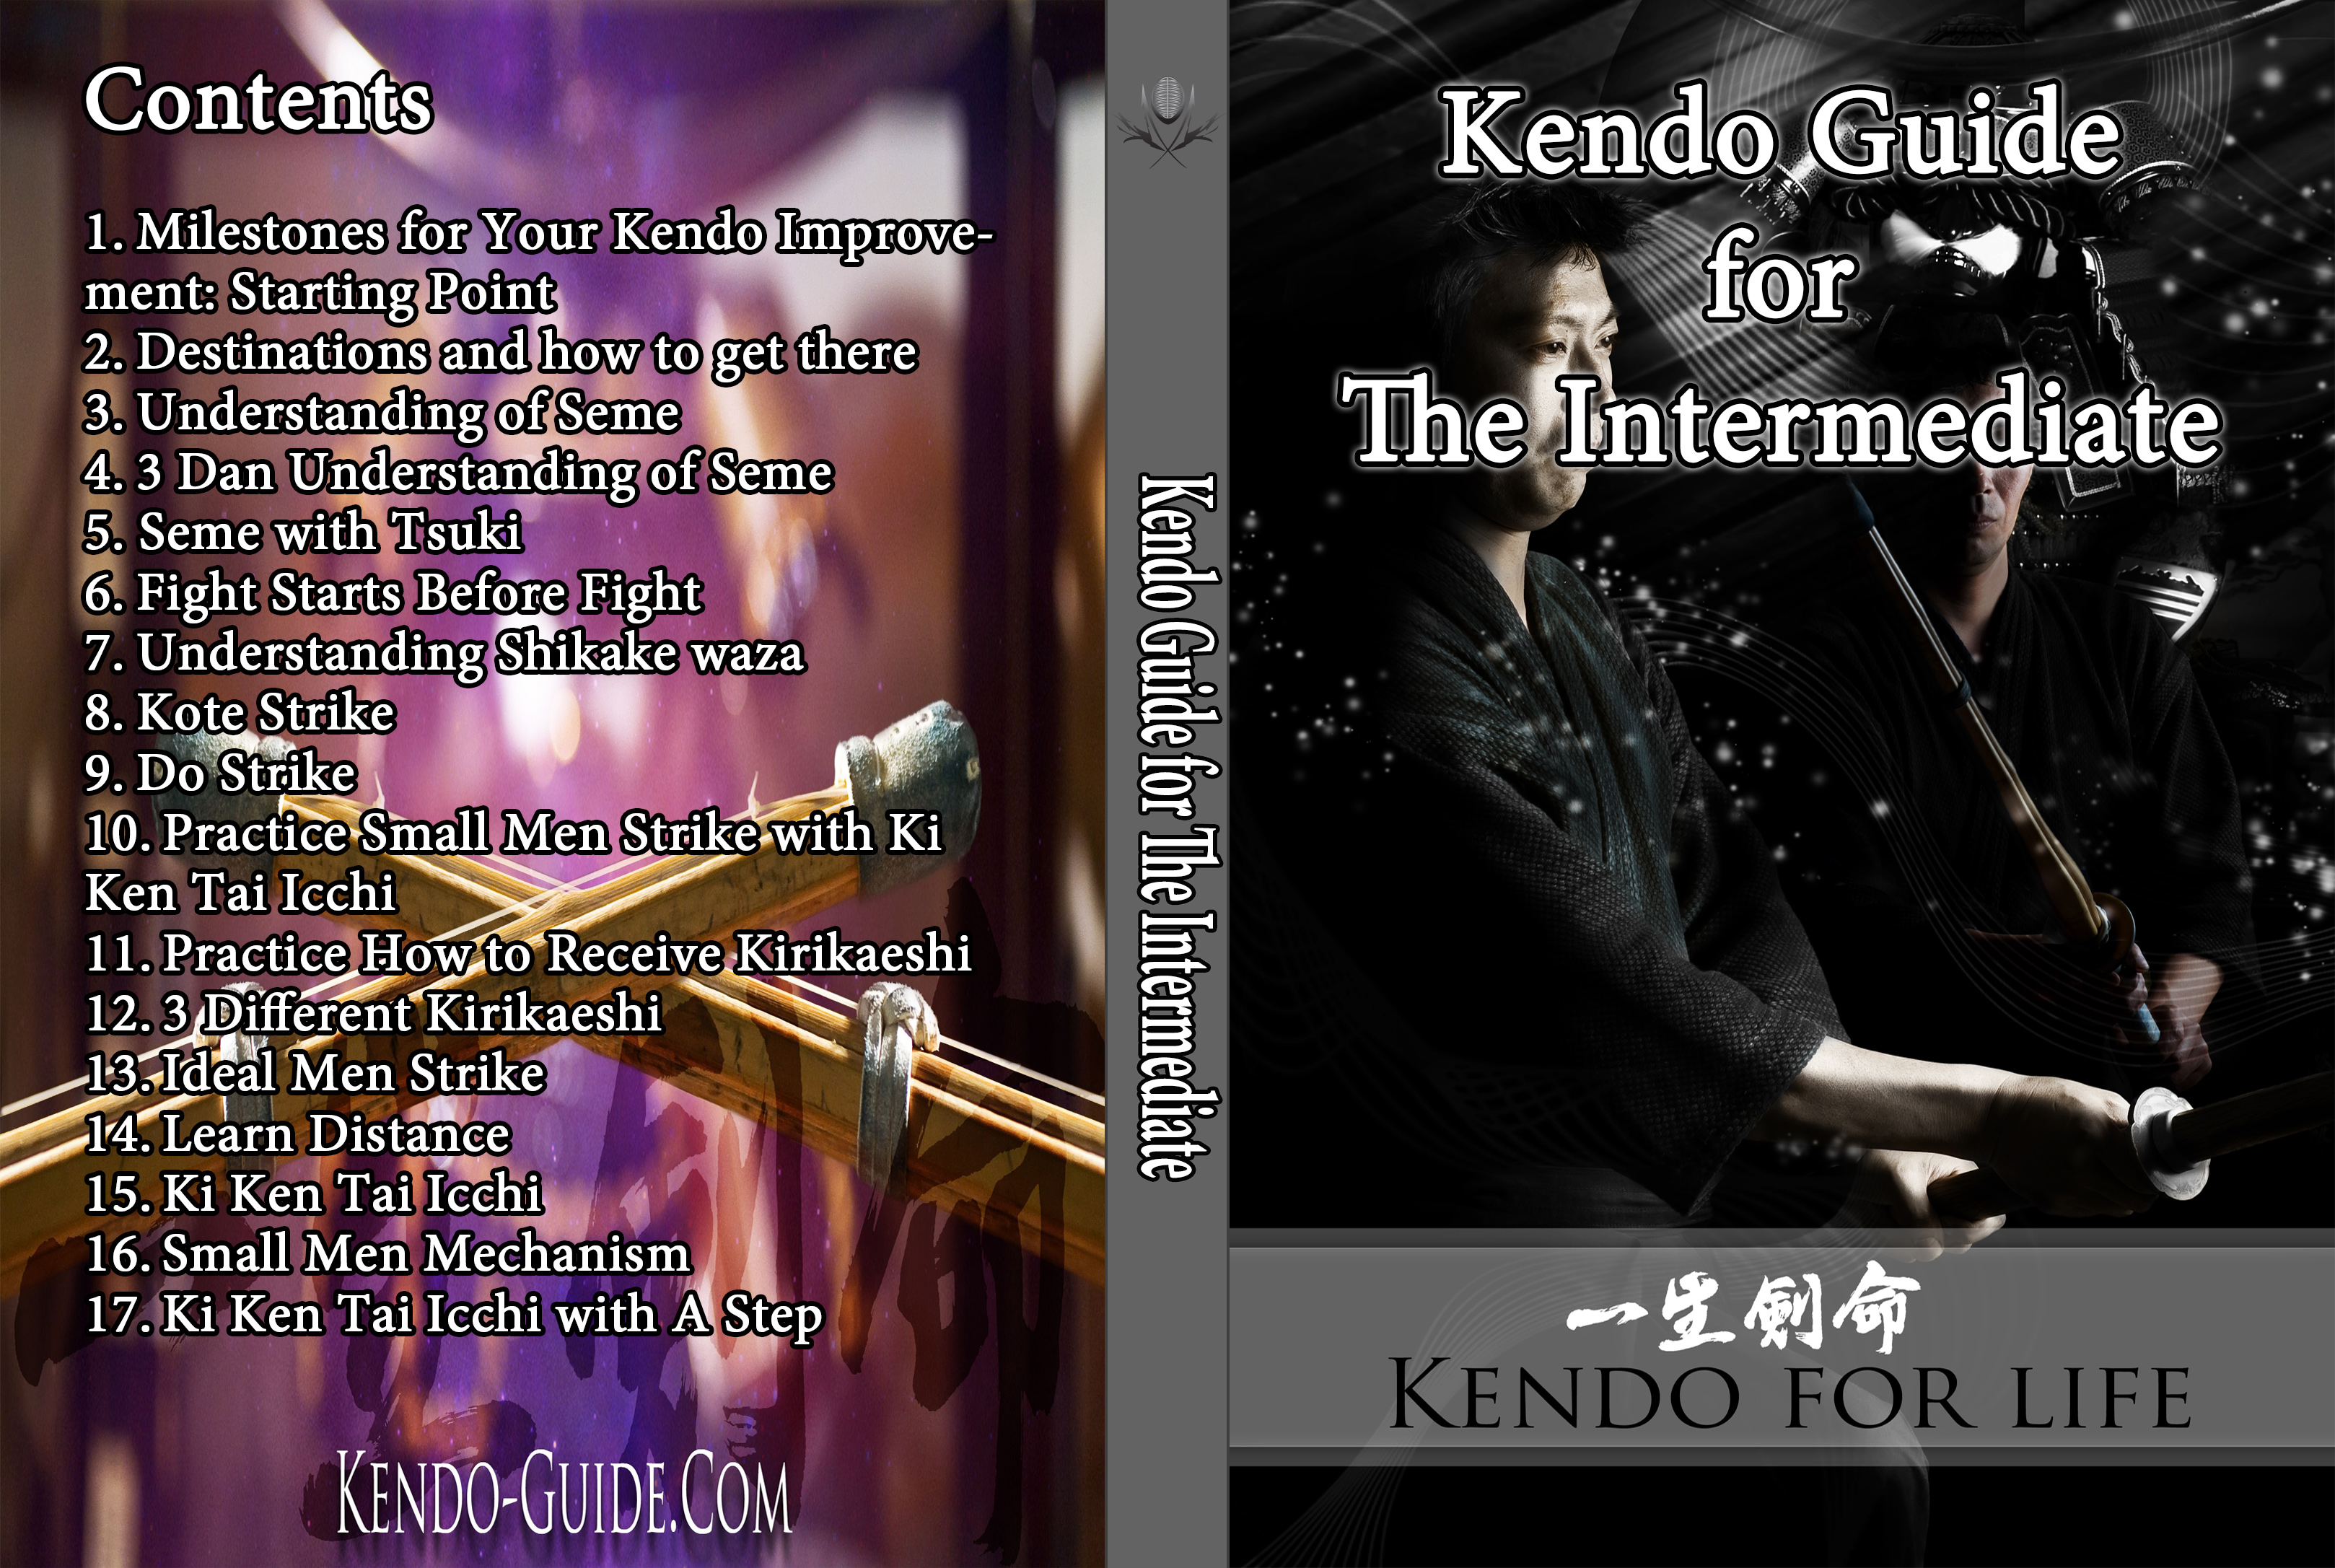 Kendo Guide for the Intermediate: Videos and Written Instructions